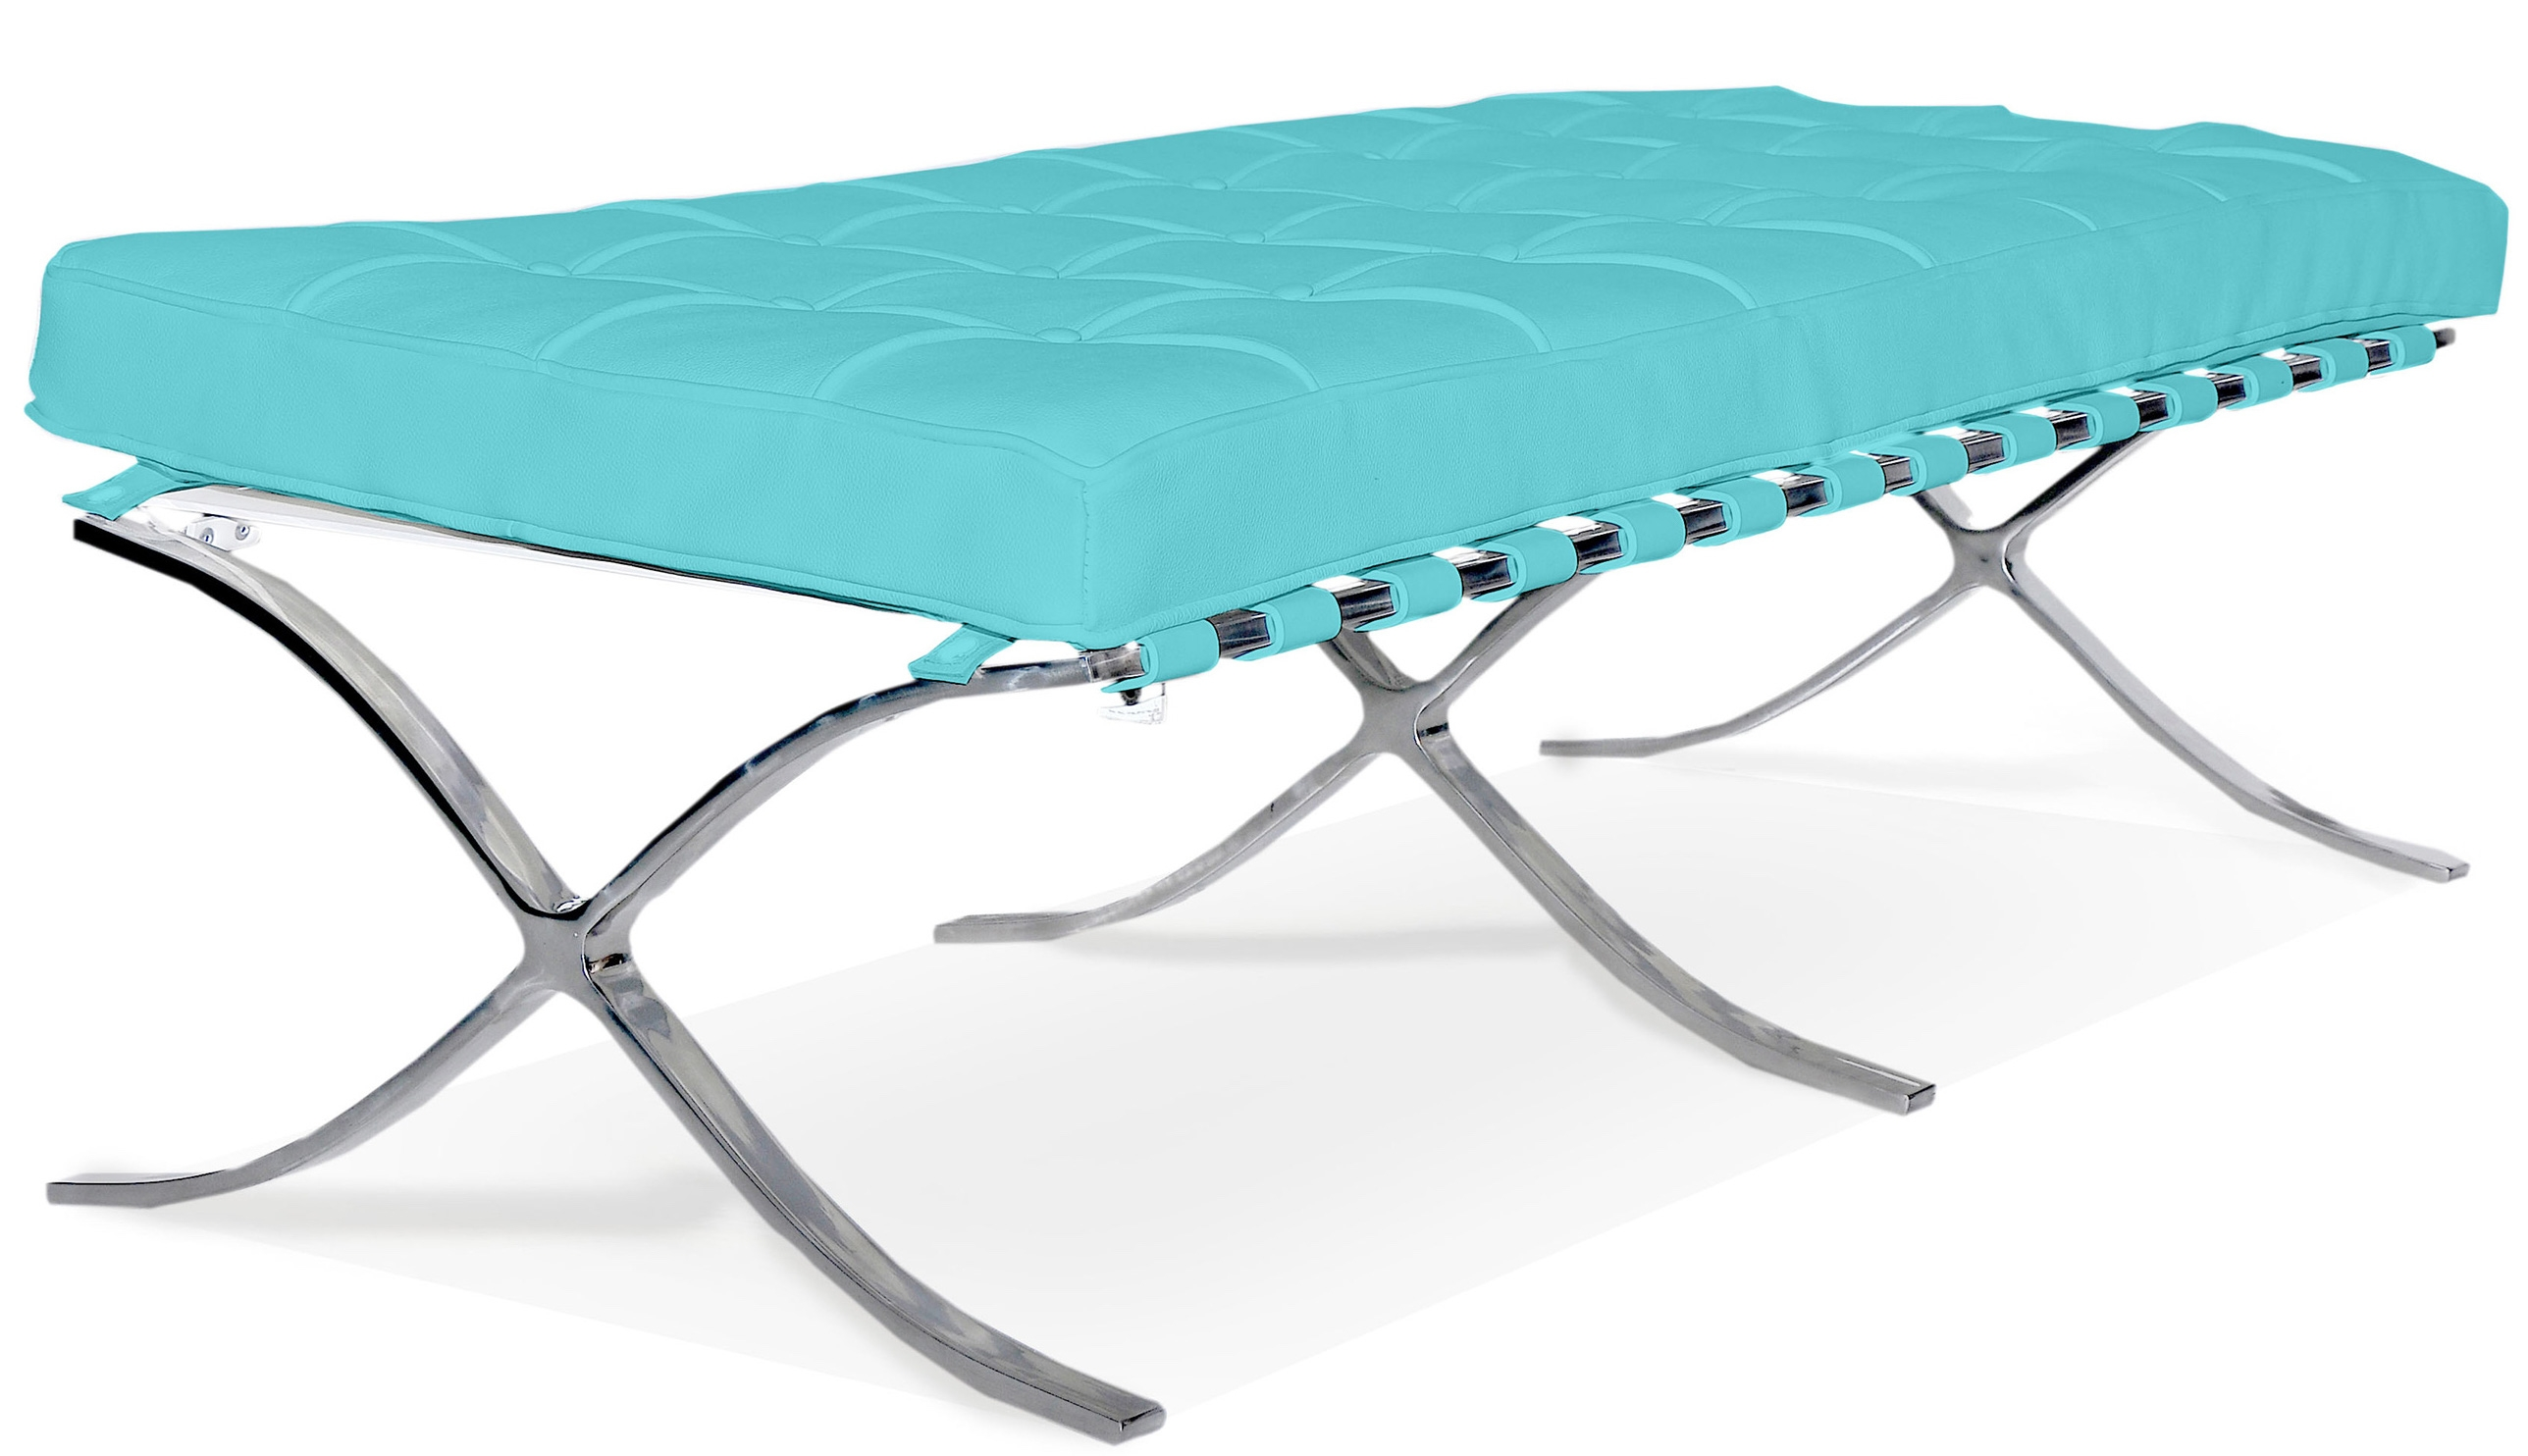 banc 2 places simili turquoise barca inspir ludwig mies van der rohe. Black Bedroom Furniture Sets. Home Design Ideas